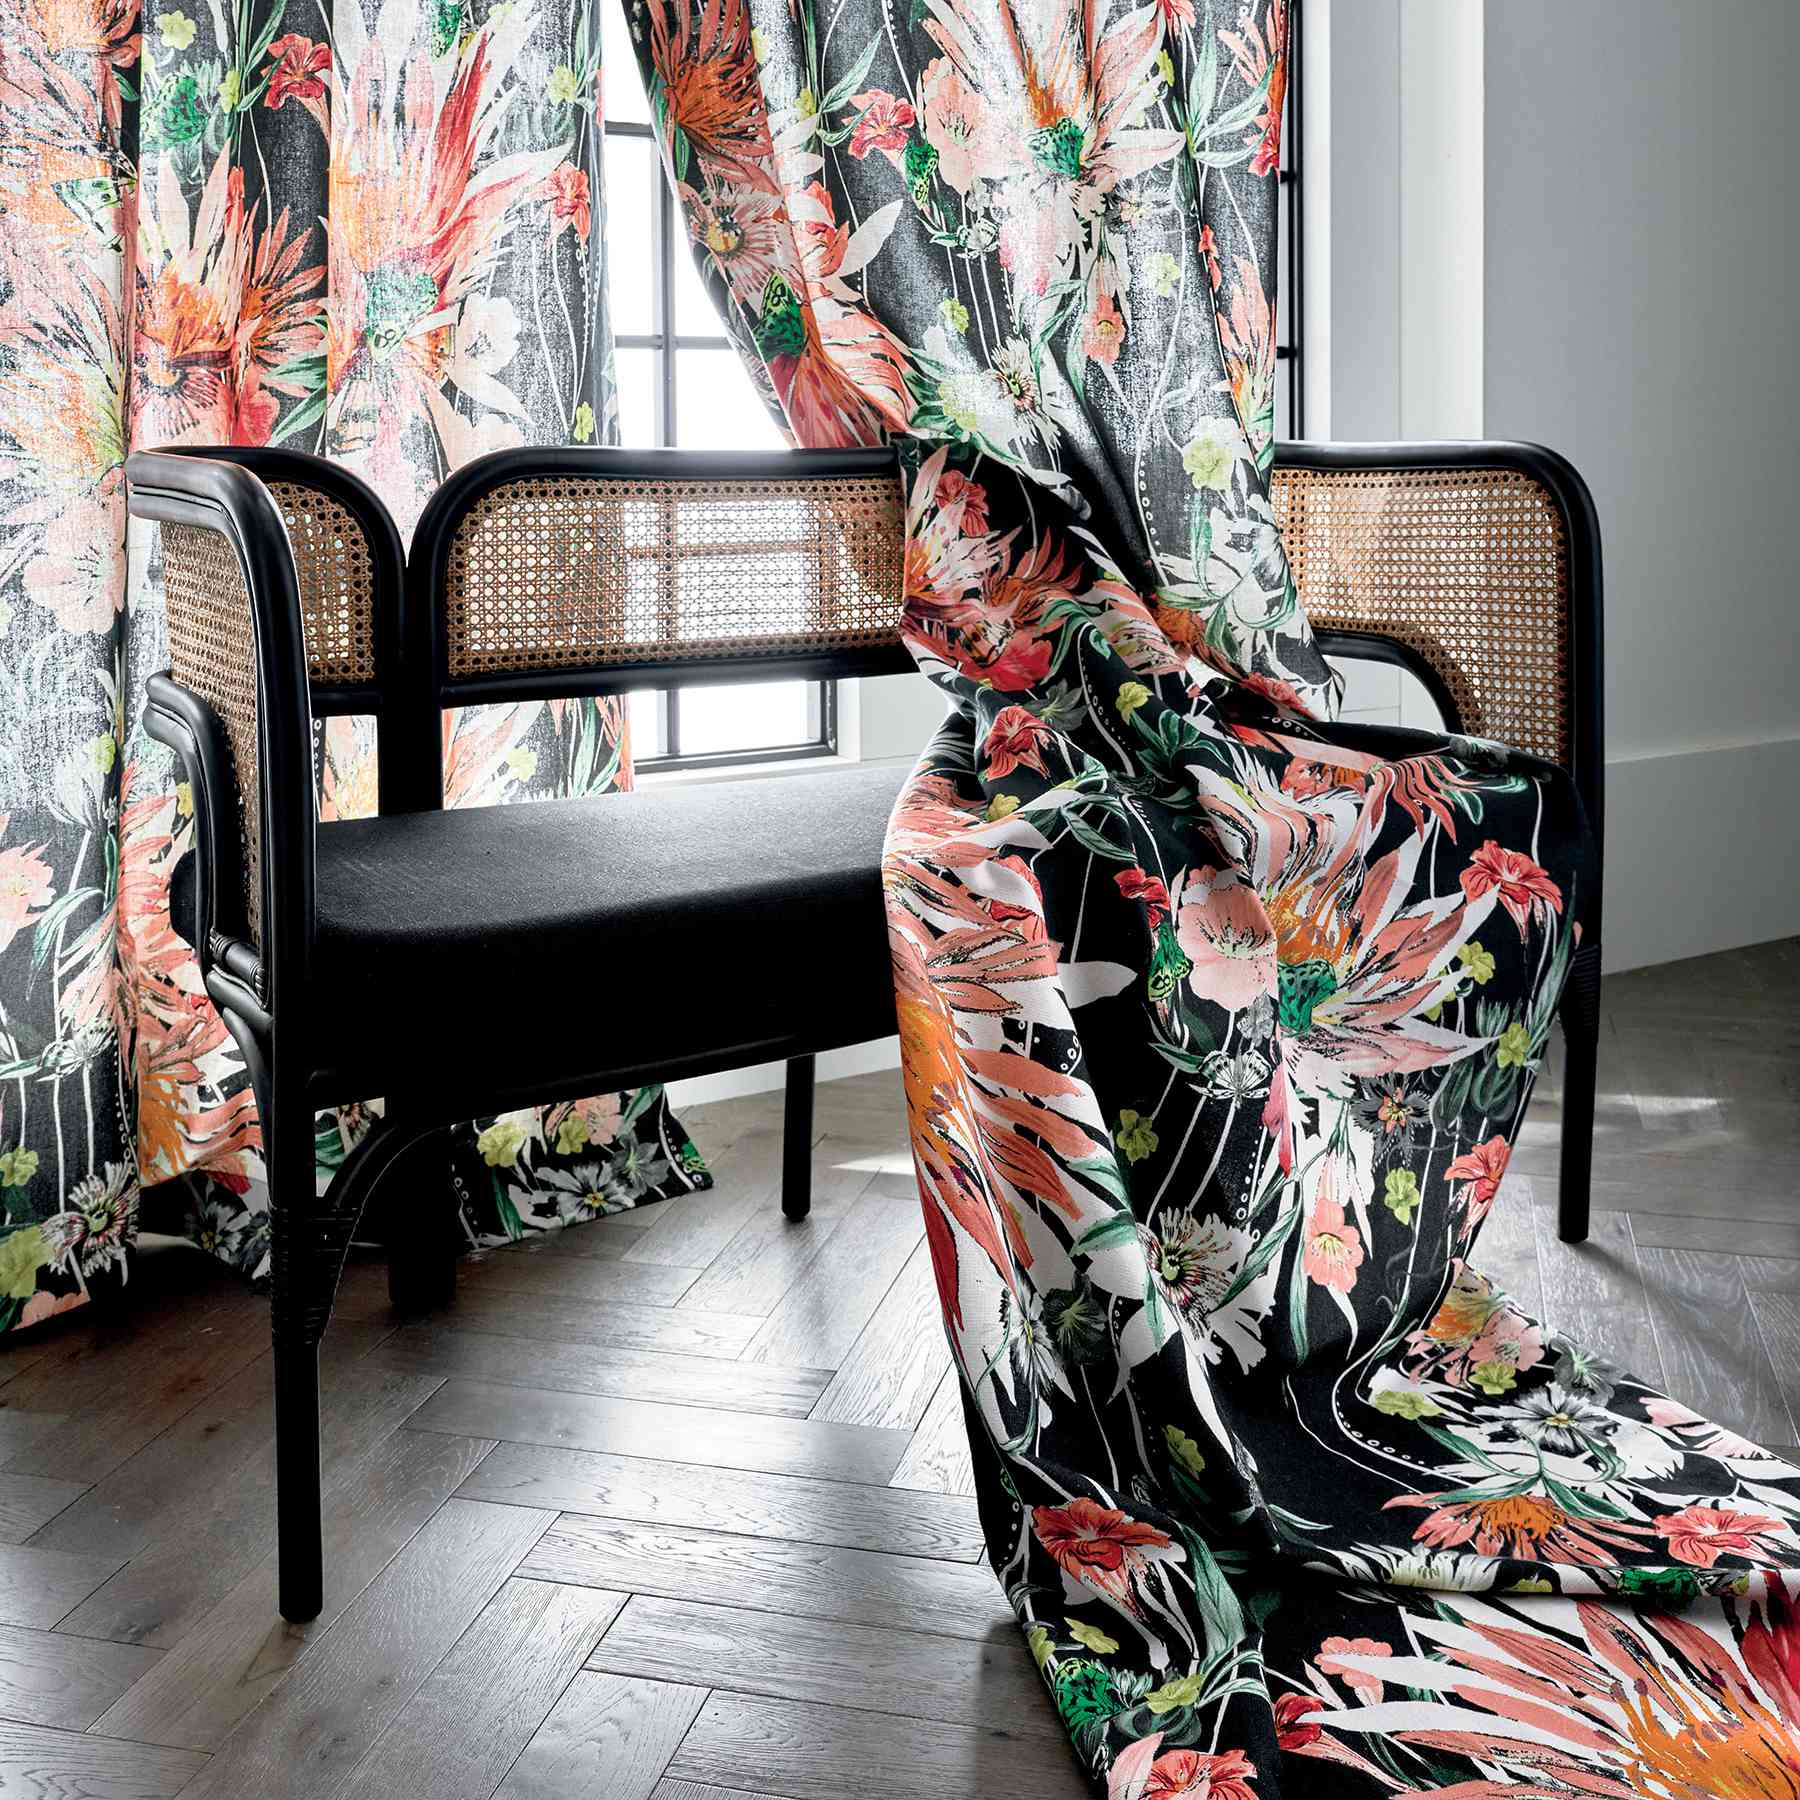 CB2 2021 Design Trends - bench with patterned curtains